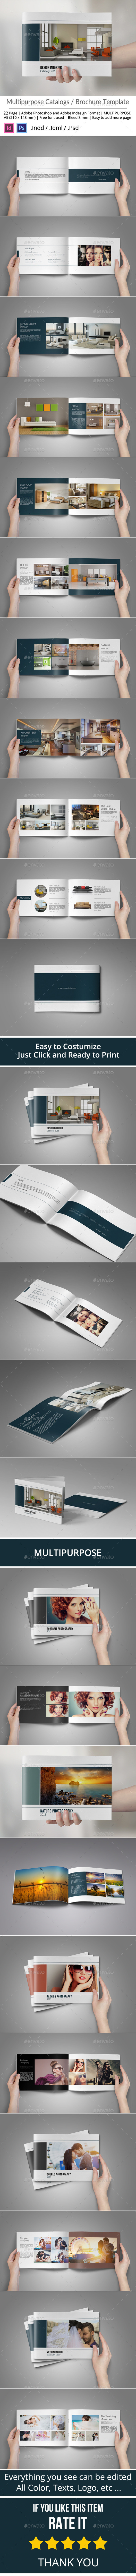 GraphicRiver Multipurpose Brochure or Portfolio Album 9216681